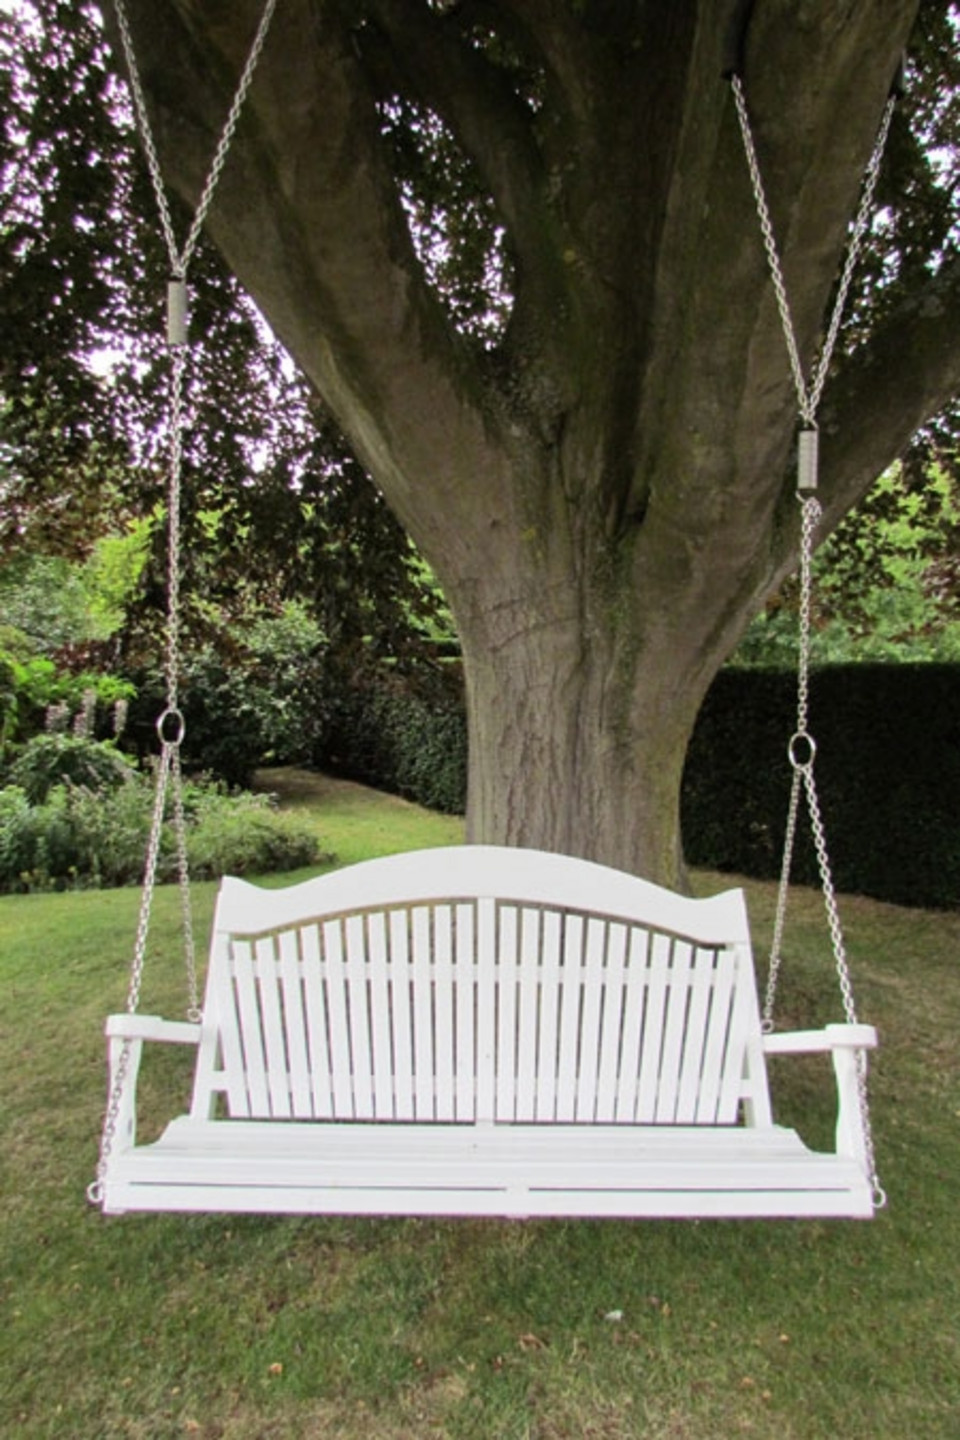 hanging chairs garden furniture chair car in steel express swing seats for trees | sitting spiritually